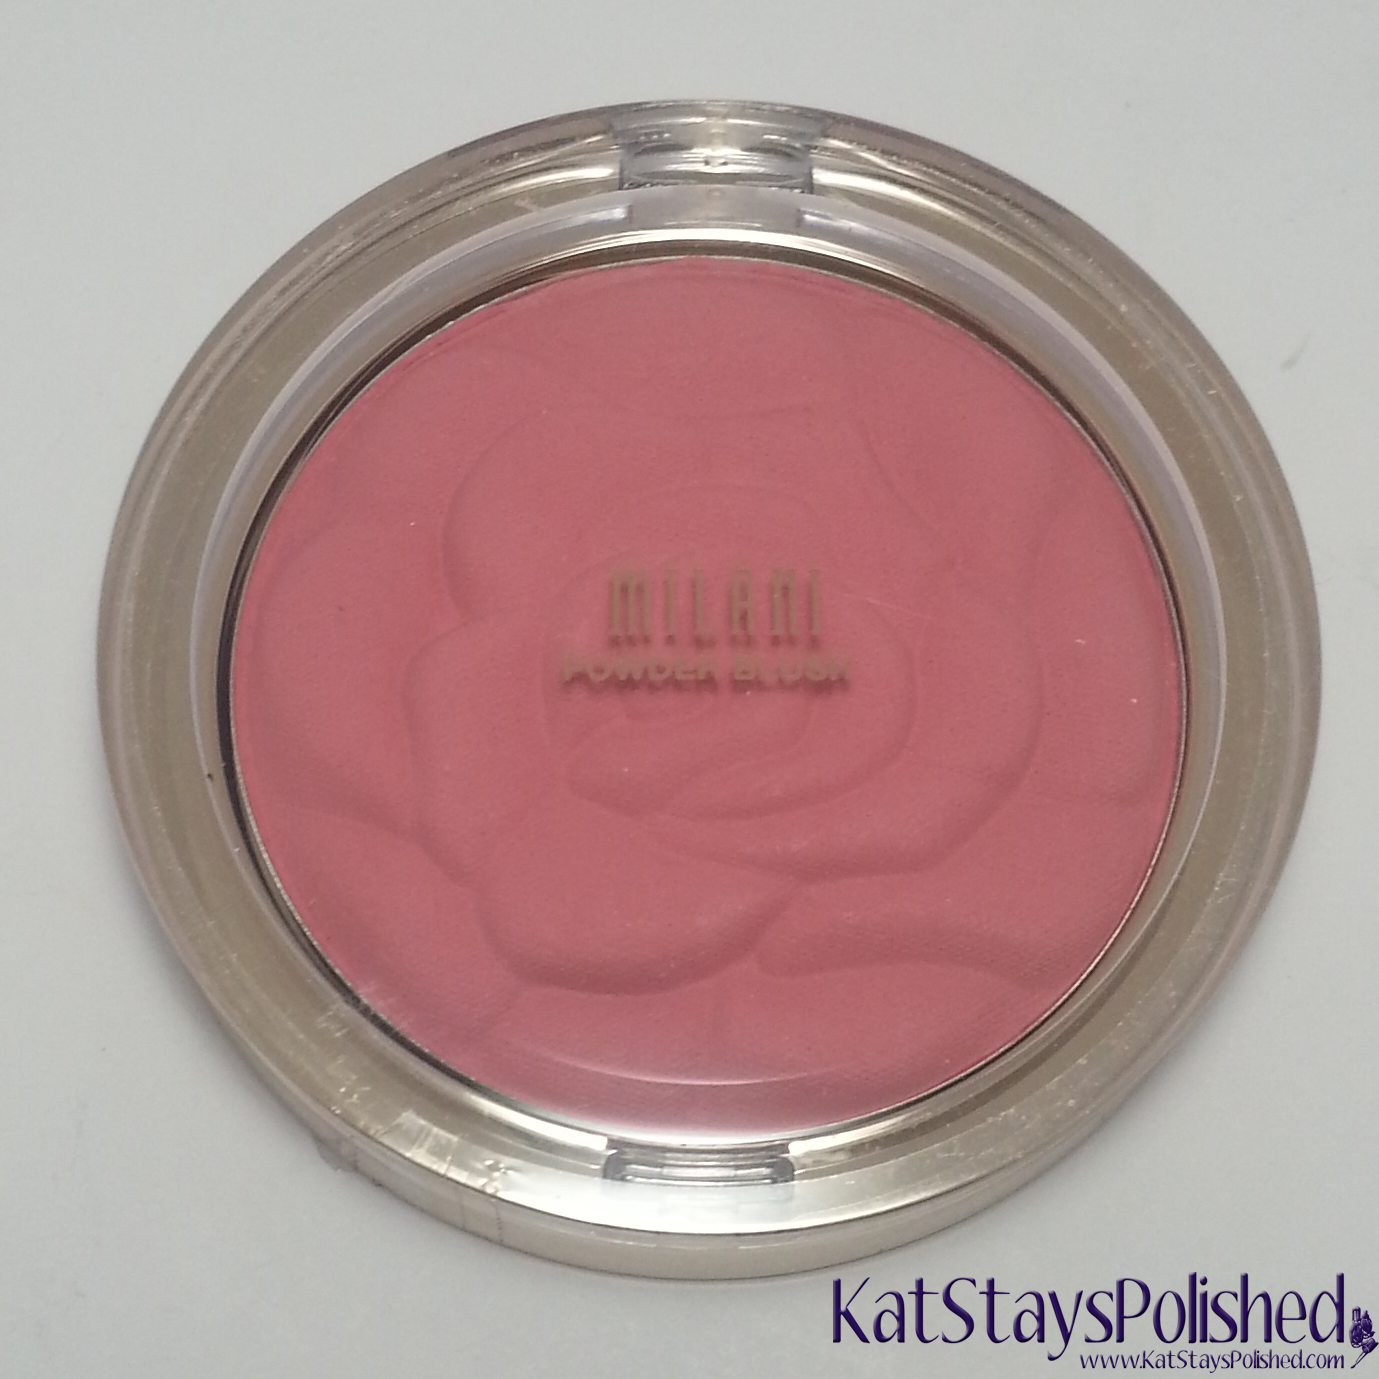 Milani Rose Powder Blush - Tea Rose | Kat Stays Polished